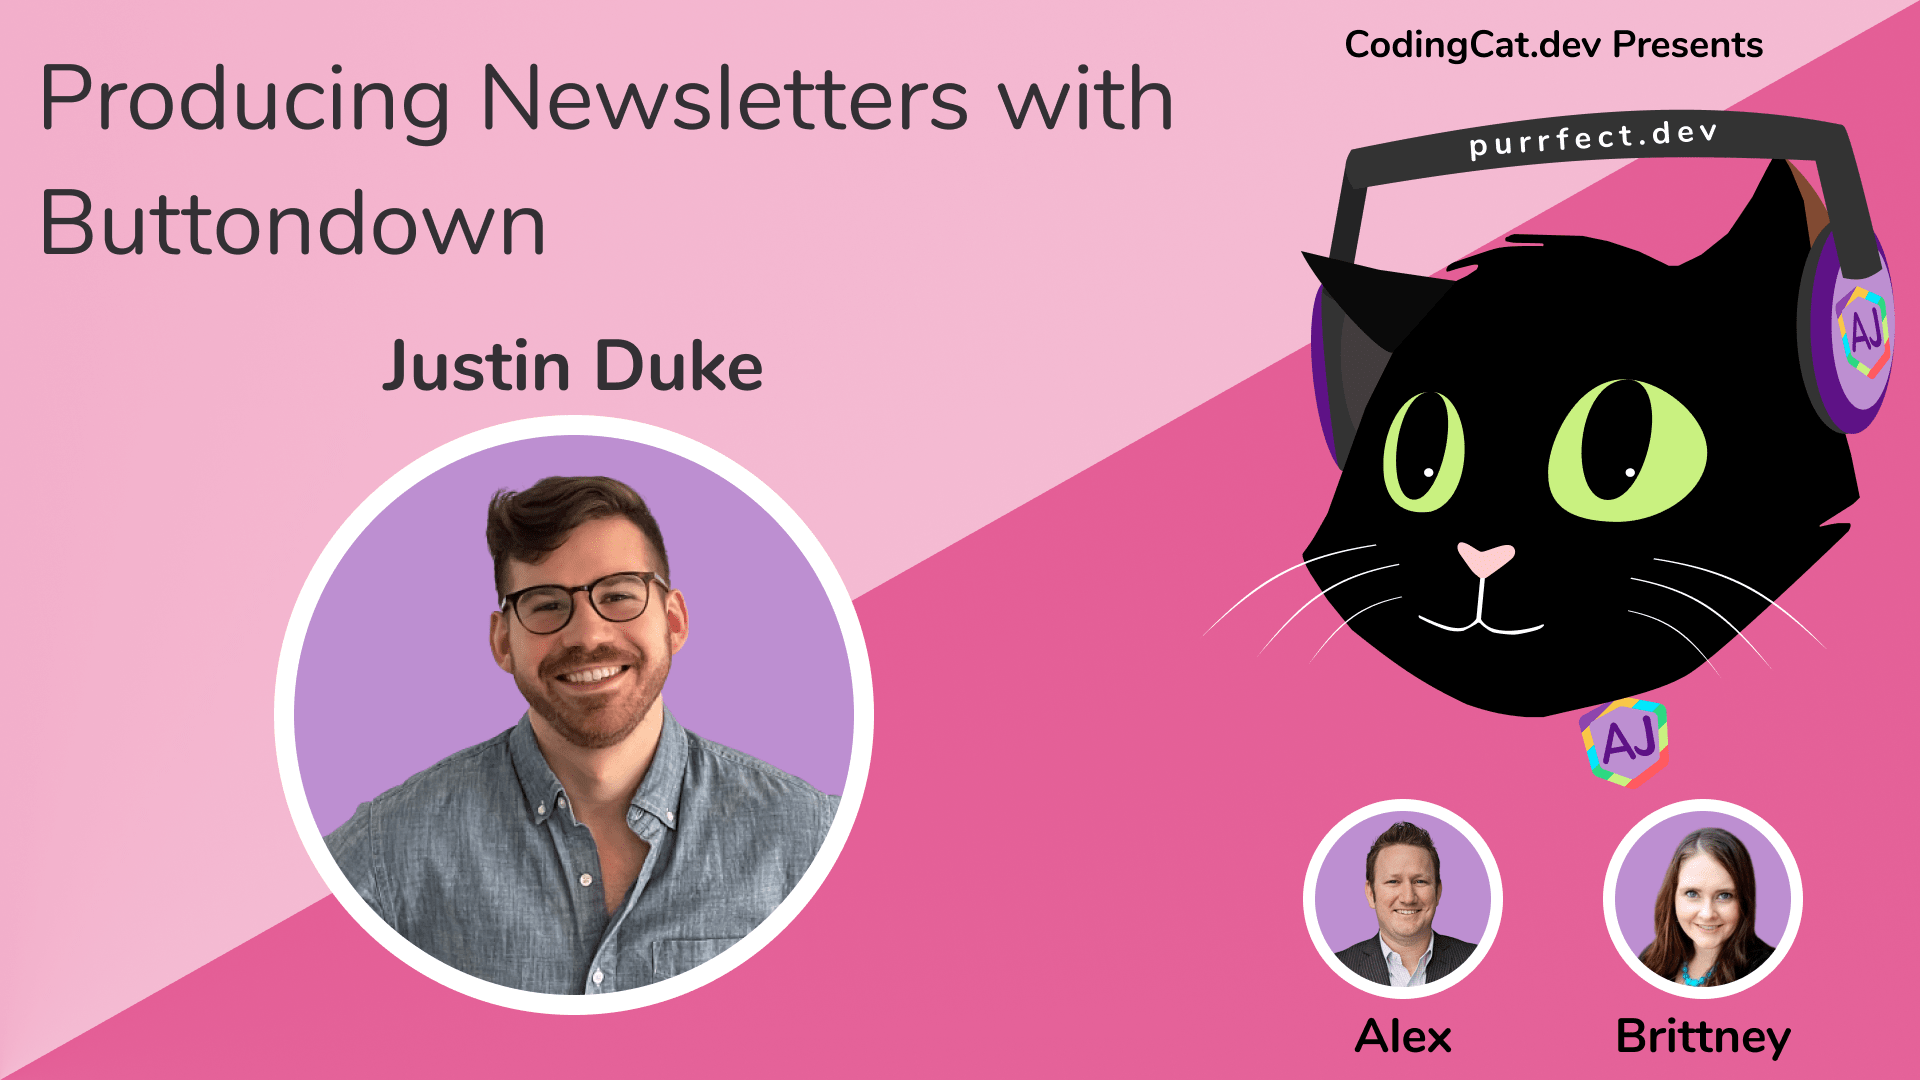 1.27 - Producing Newsletters with Buttondown